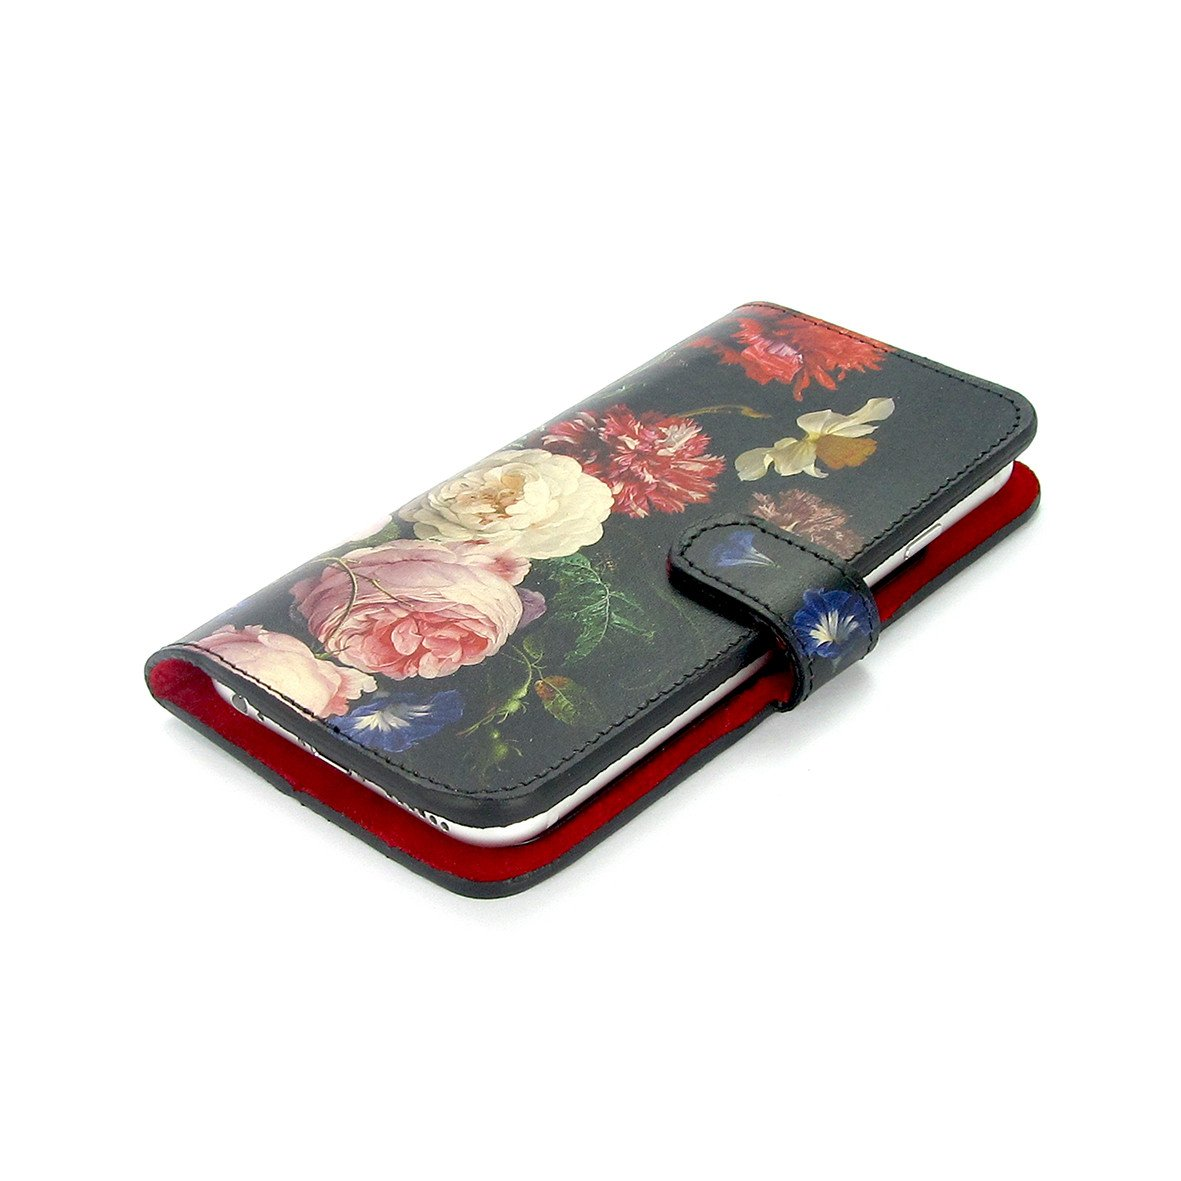 iPhone wallet case – luxurious iphone xs max case - High quality 100% leather phone case for iPhone XR. iPhone XS - floral print - A Dutch Spring - tulips flowers-  leather goods